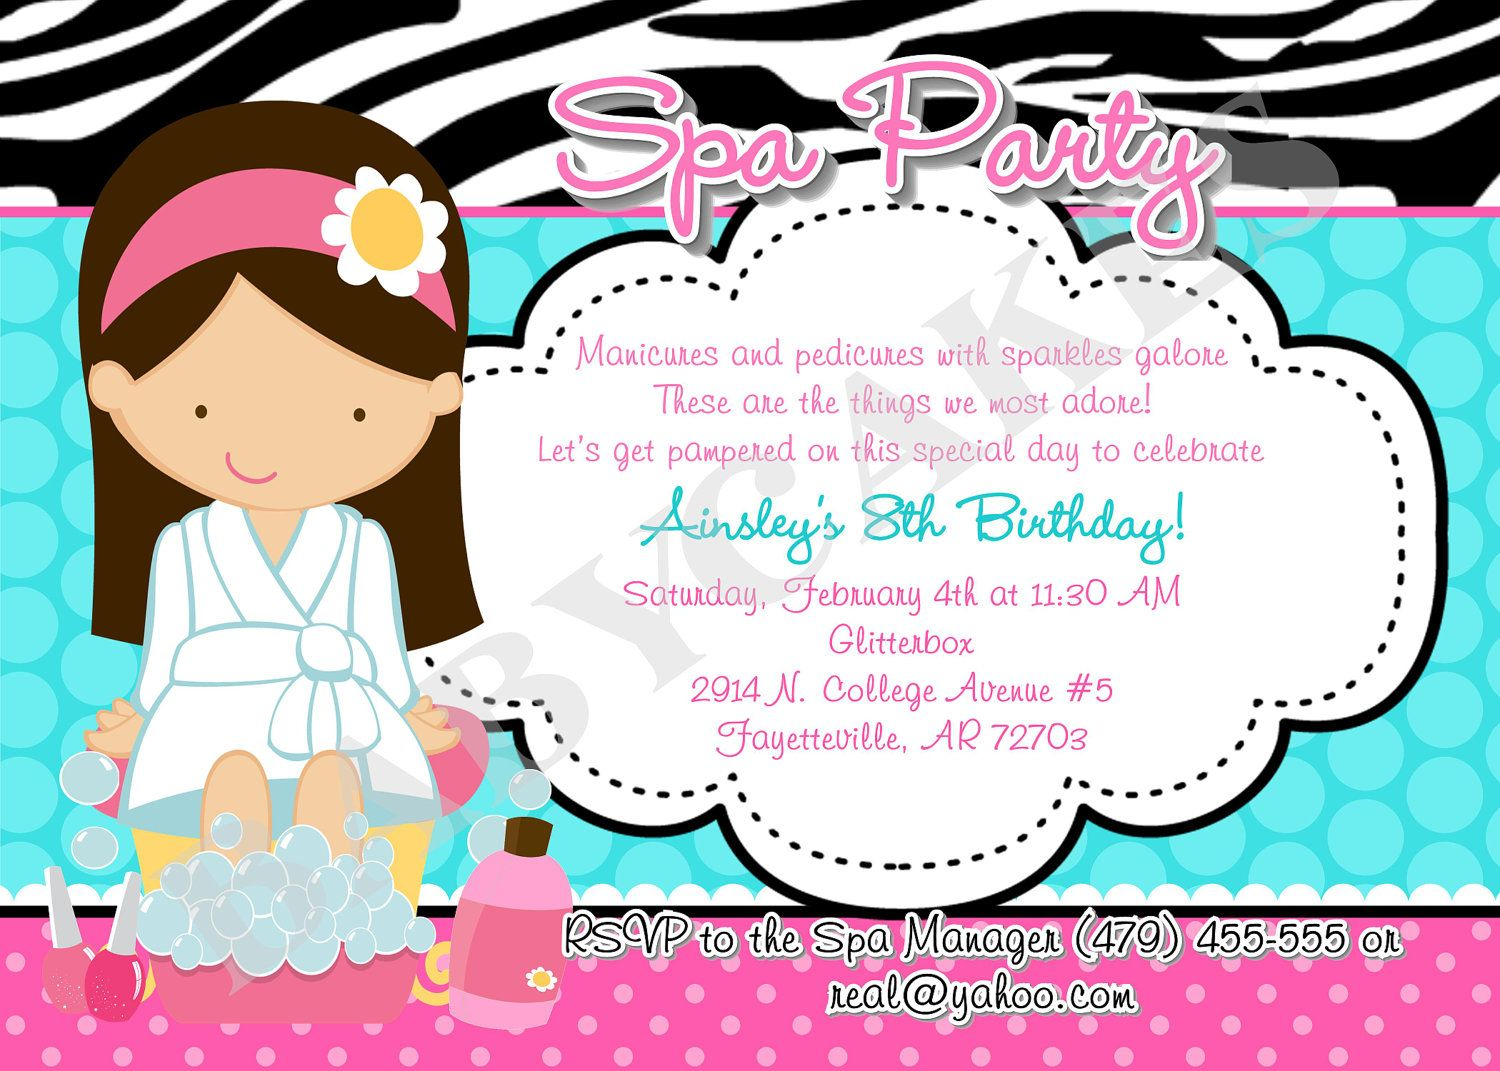 free printable pamper party invitations  bday, invitation samples